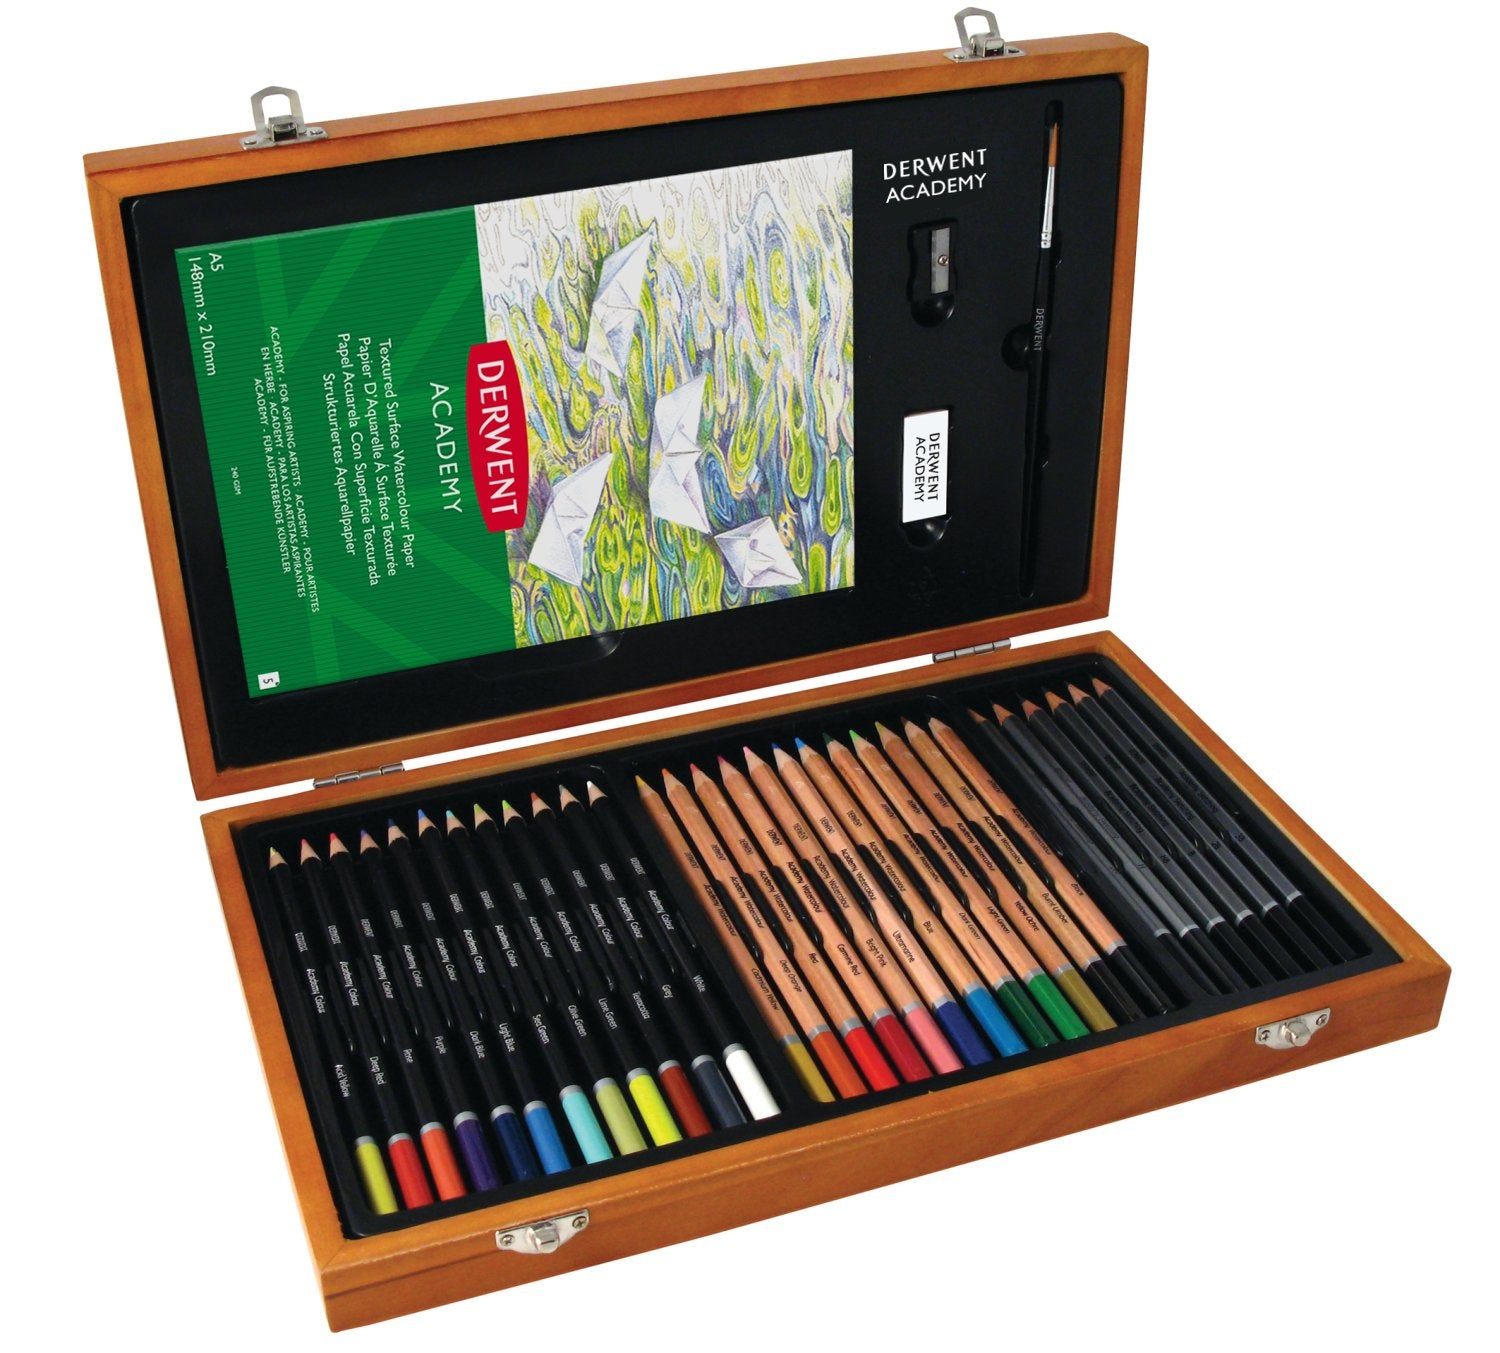 Derwent Academy Wooden Box Set of Coloured Pencils